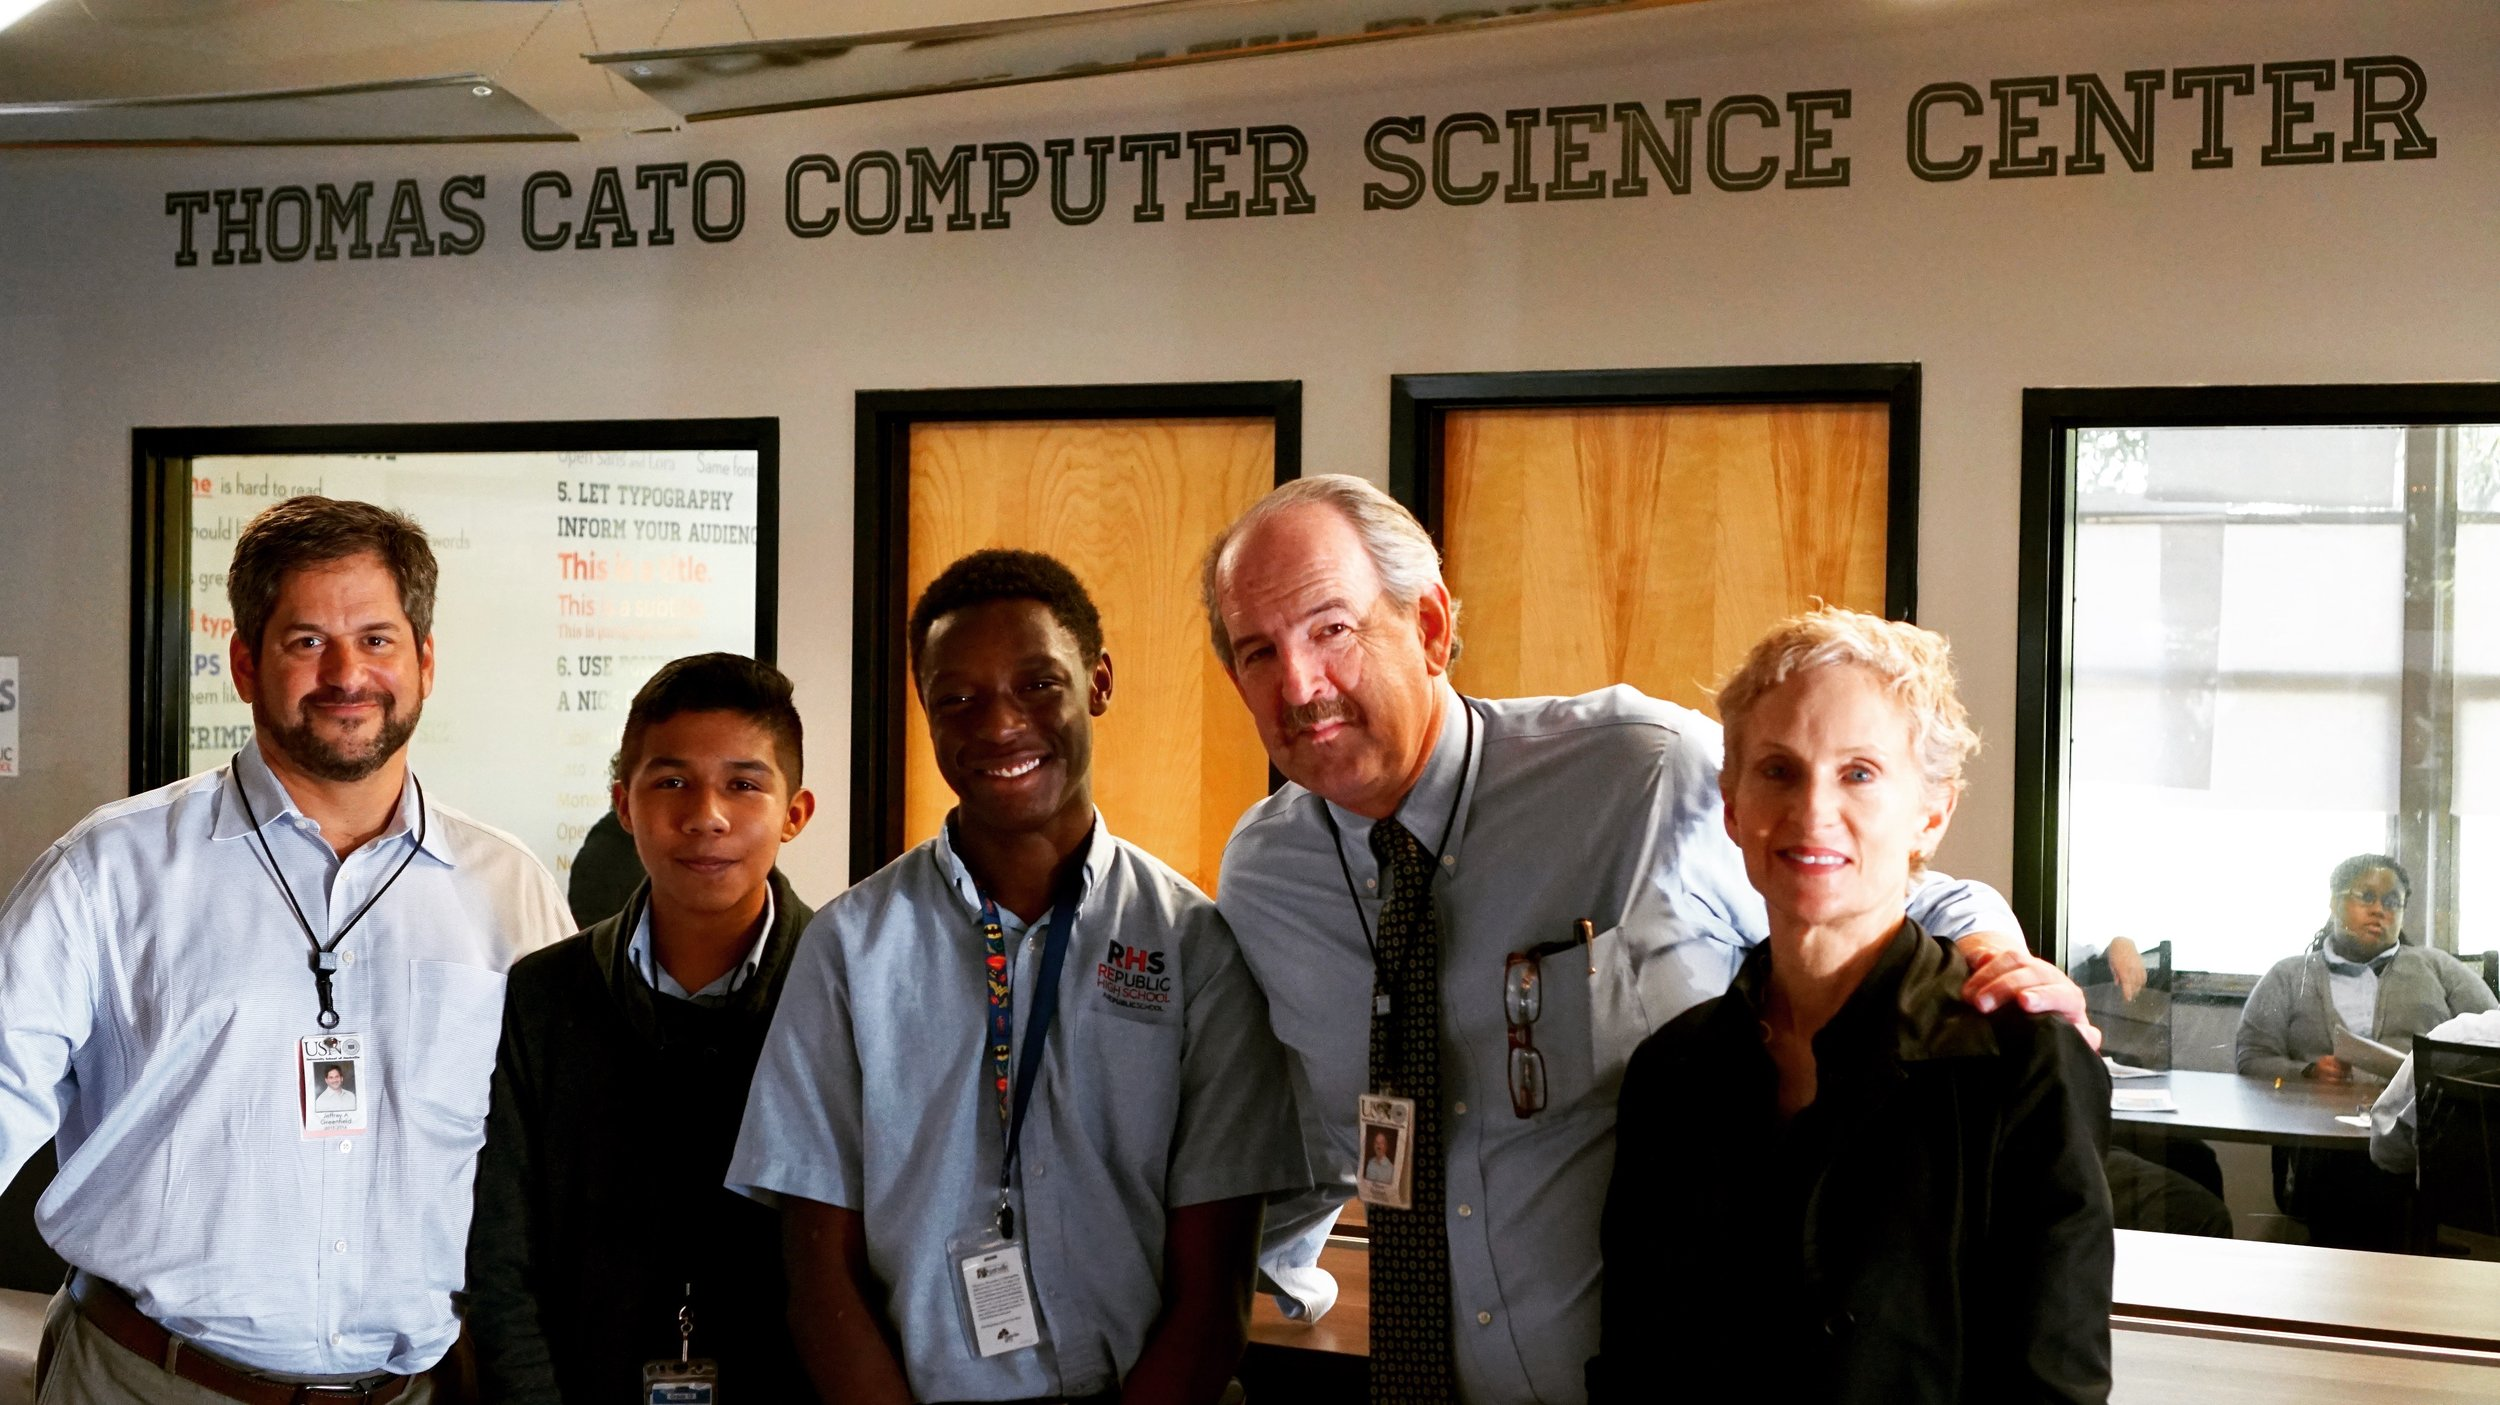 Celebrating with students and faculty at the opening of the Thomas Cato Computer Science Center at RePublic High School.